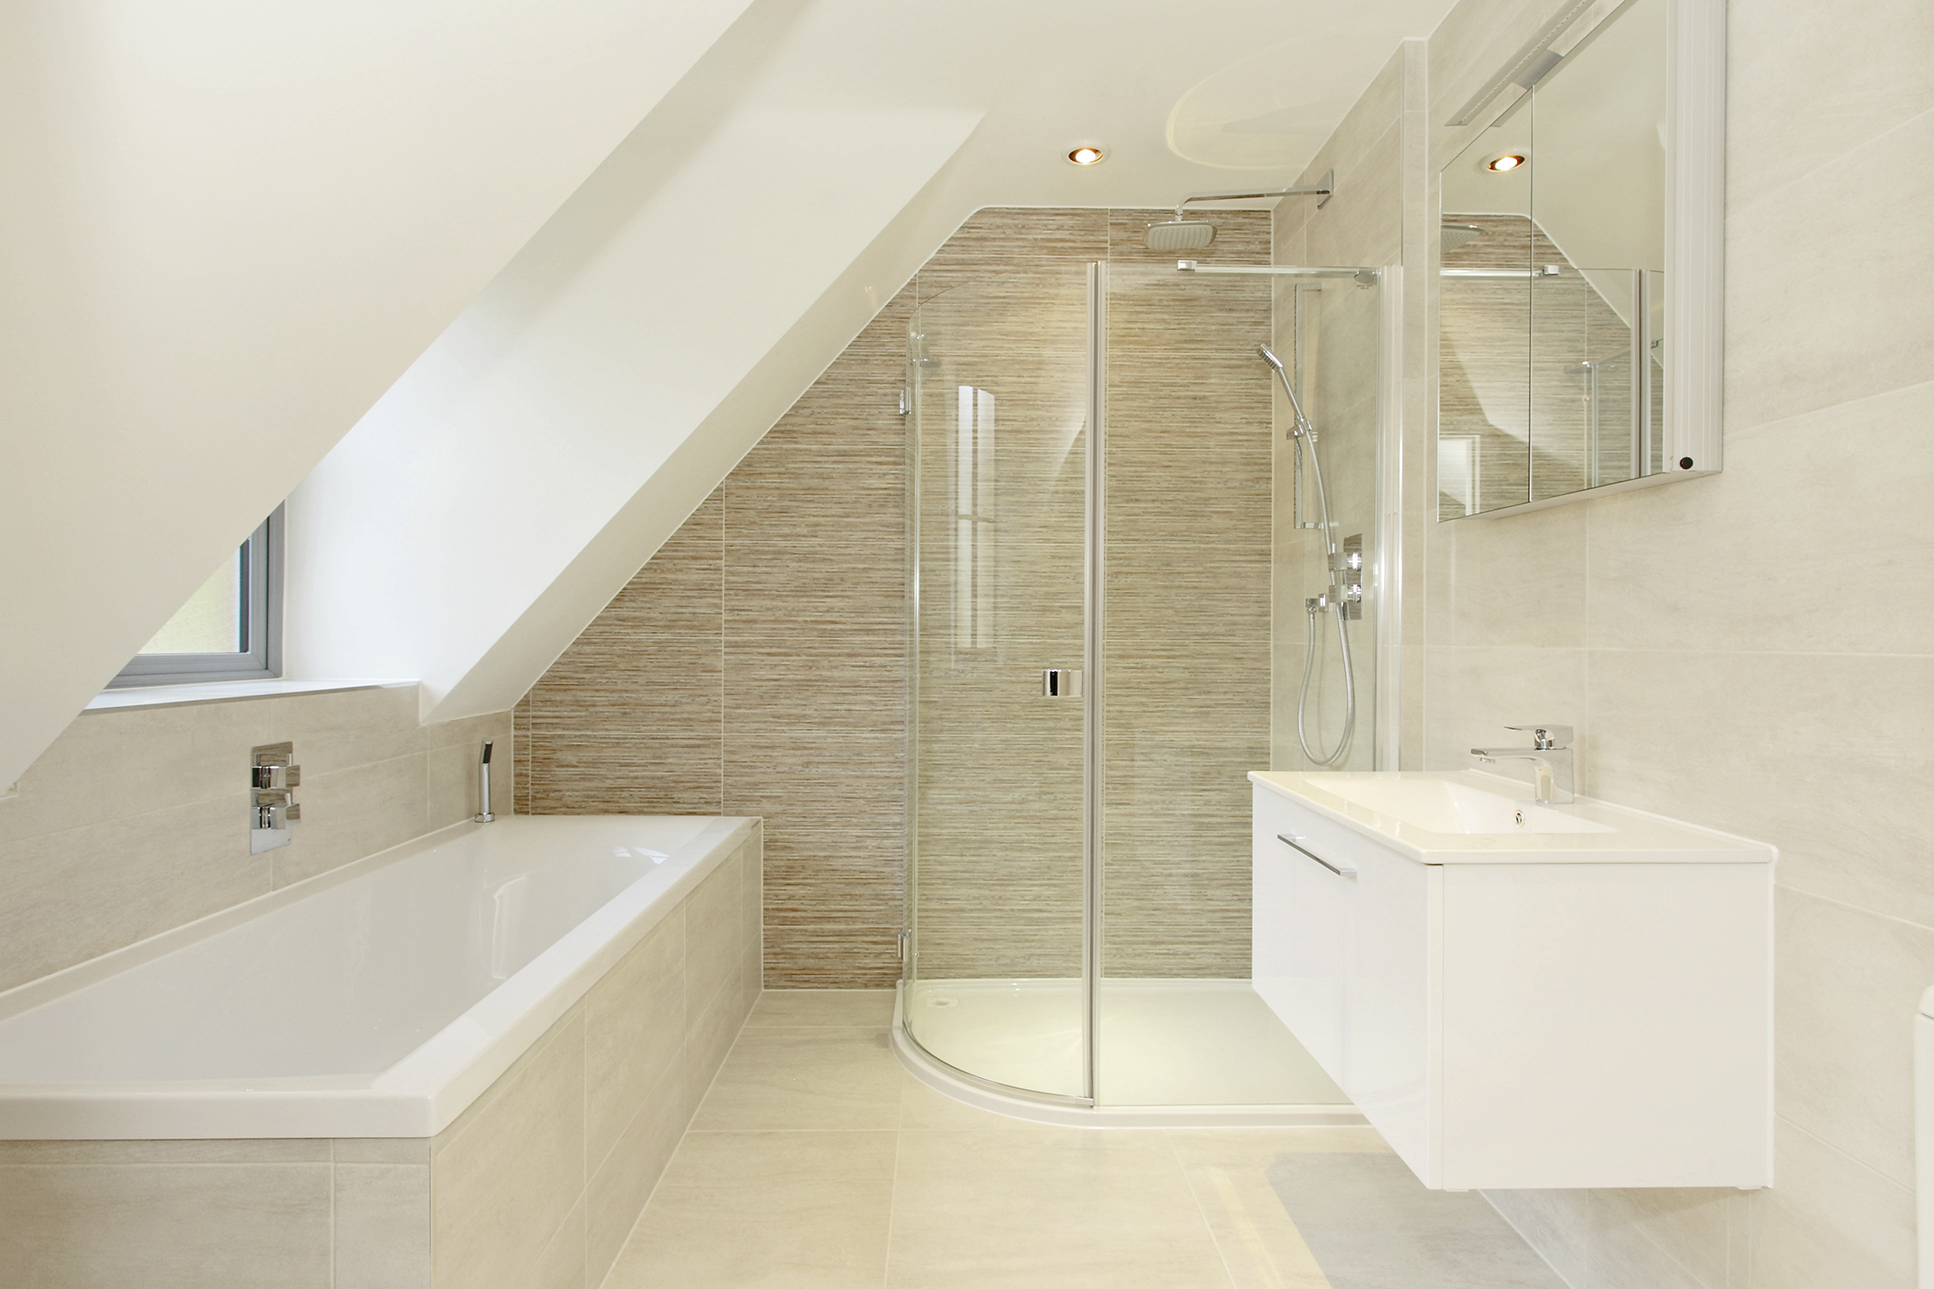 Fully fitted bathroom incorporating porcelain tiling, quadrant shower unit and wall hung basin unit.